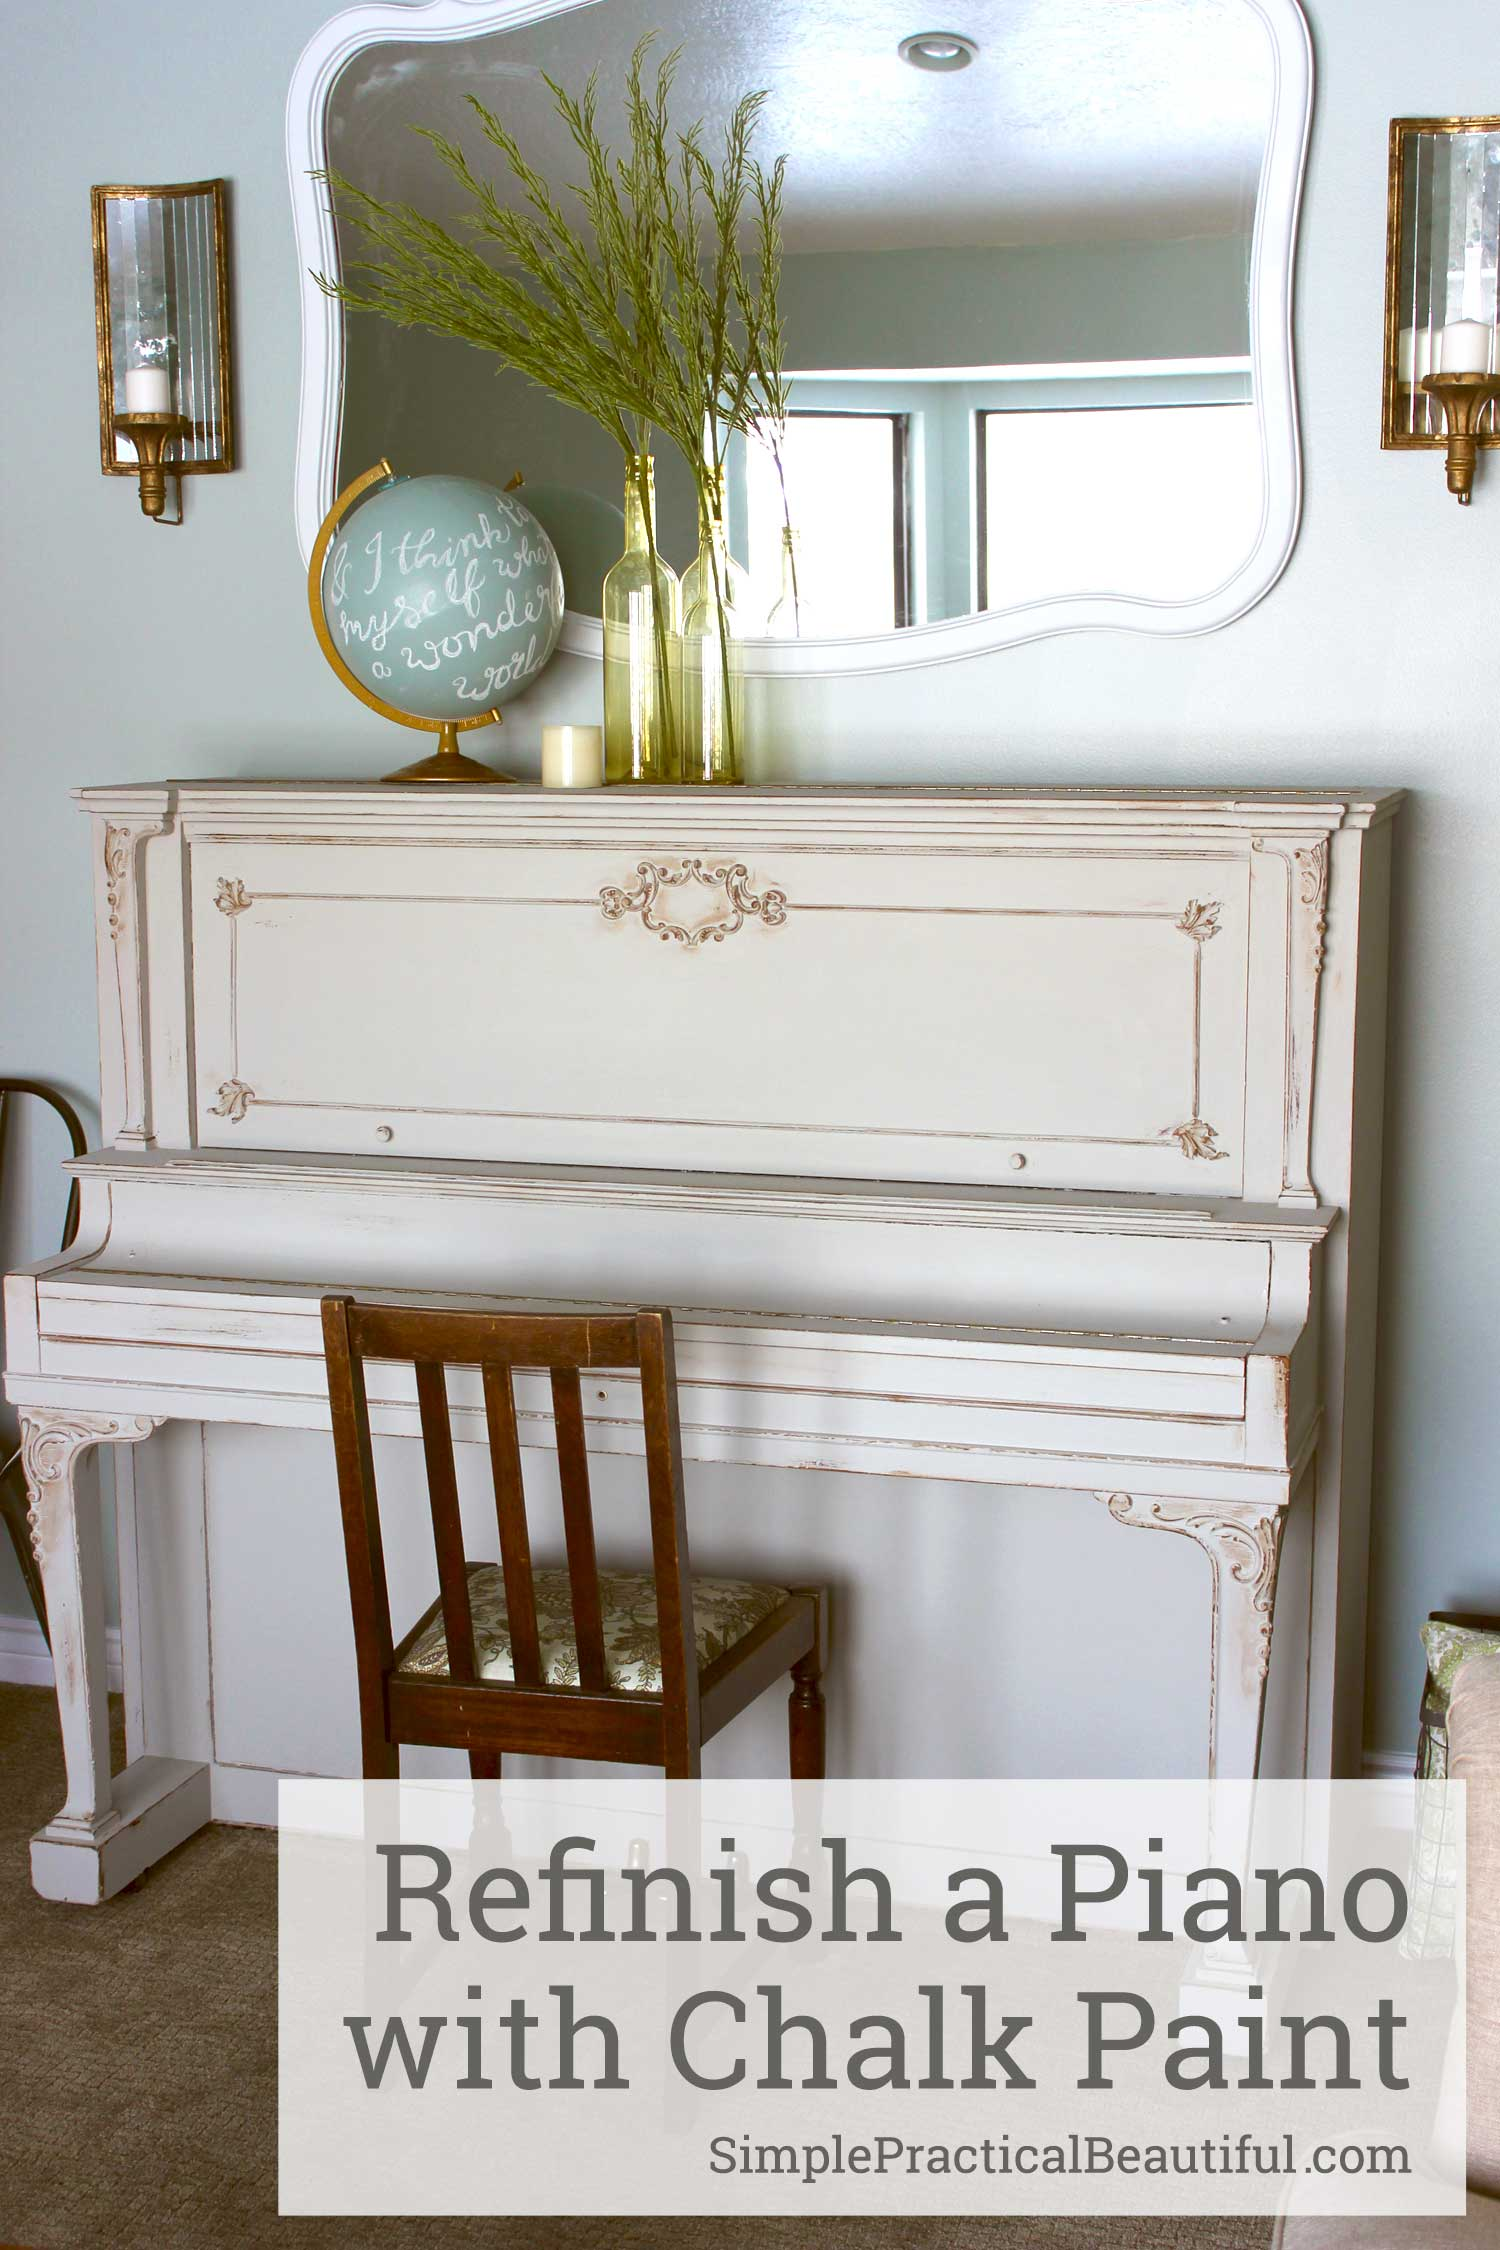 How to refinish furniture with chalk paint | a piano makeover | french country interior design | How to use chalk paint